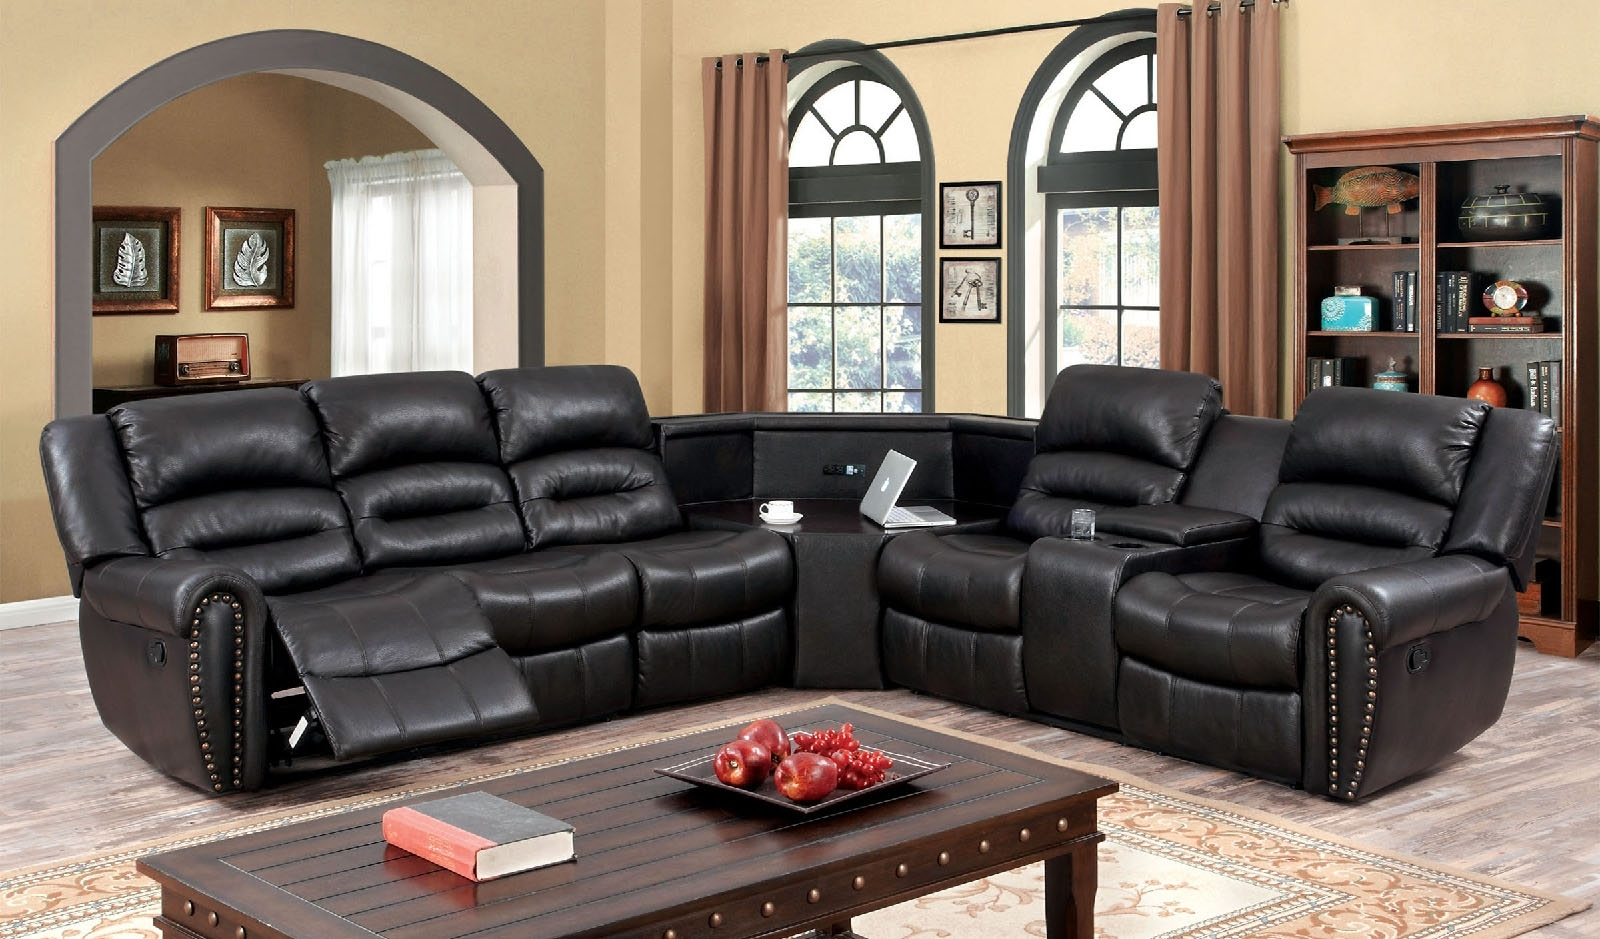 Sectional Sofas With Cup Holders Throughout Most Popular Double Recliner With Cup Holders Fabric Reclining Sectional (View 3 of 15)